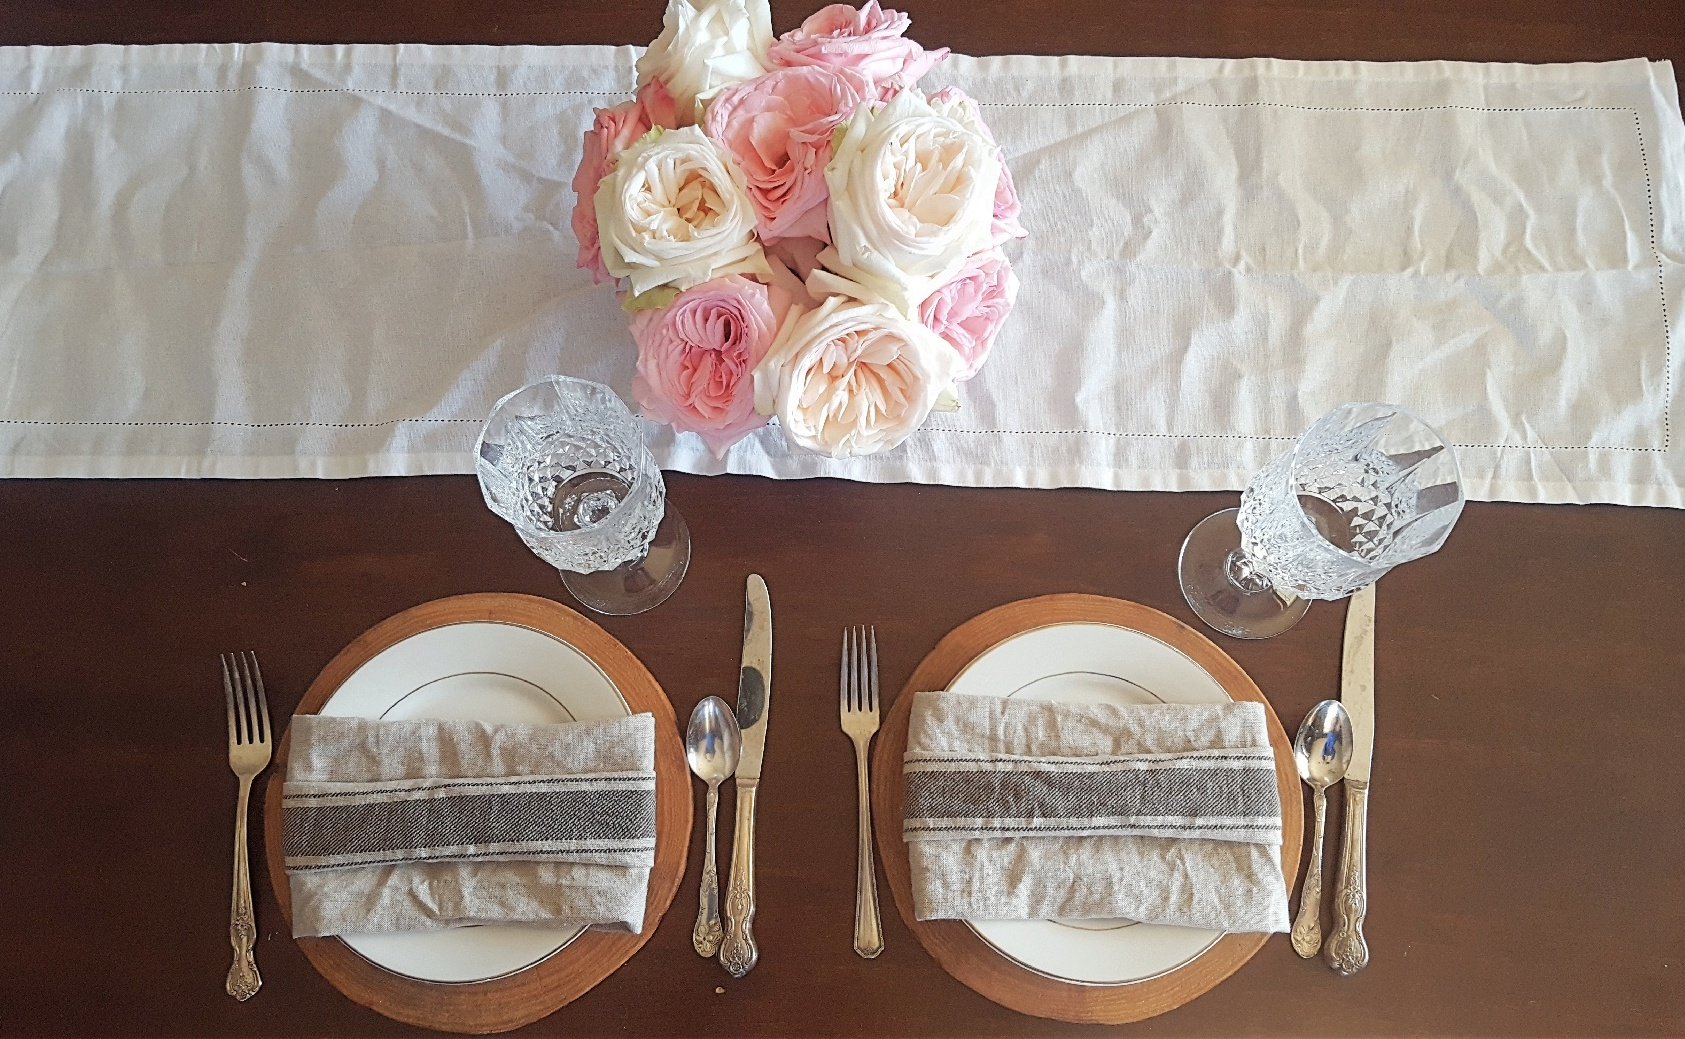 pink and blush roses tablescape.jpg